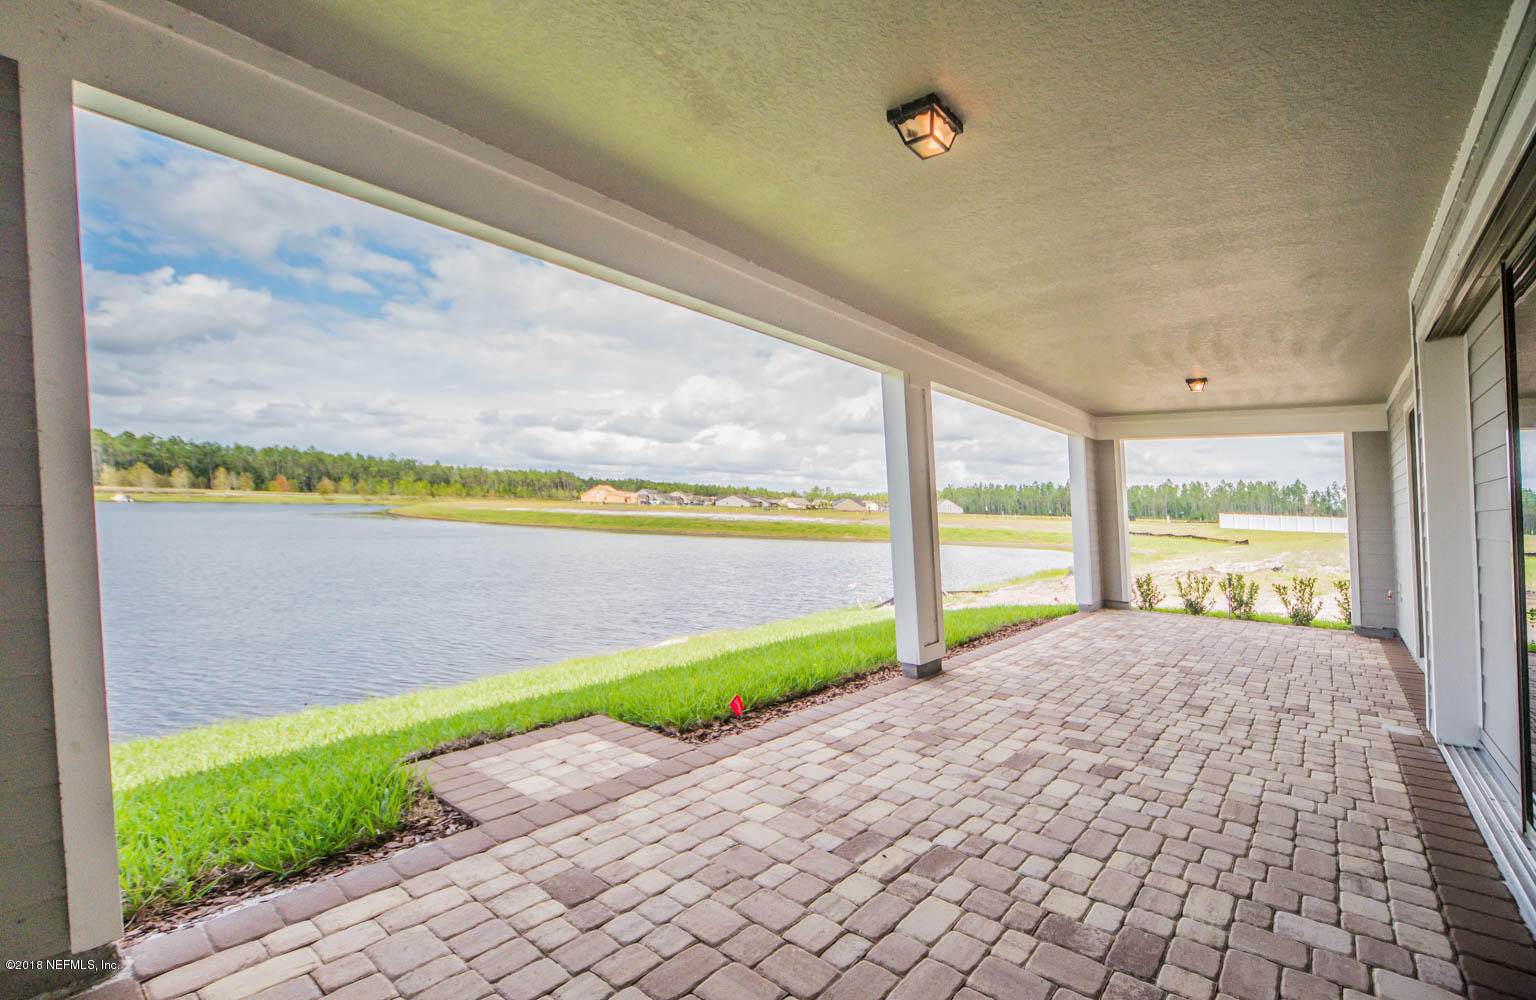 75 CATESBY, ST AUGUSTINE, FLORIDA 32095, 3 Bedrooms Bedrooms, ,3 BathroomsBathrooms,Residential - single family,For sale,CATESBY,942218